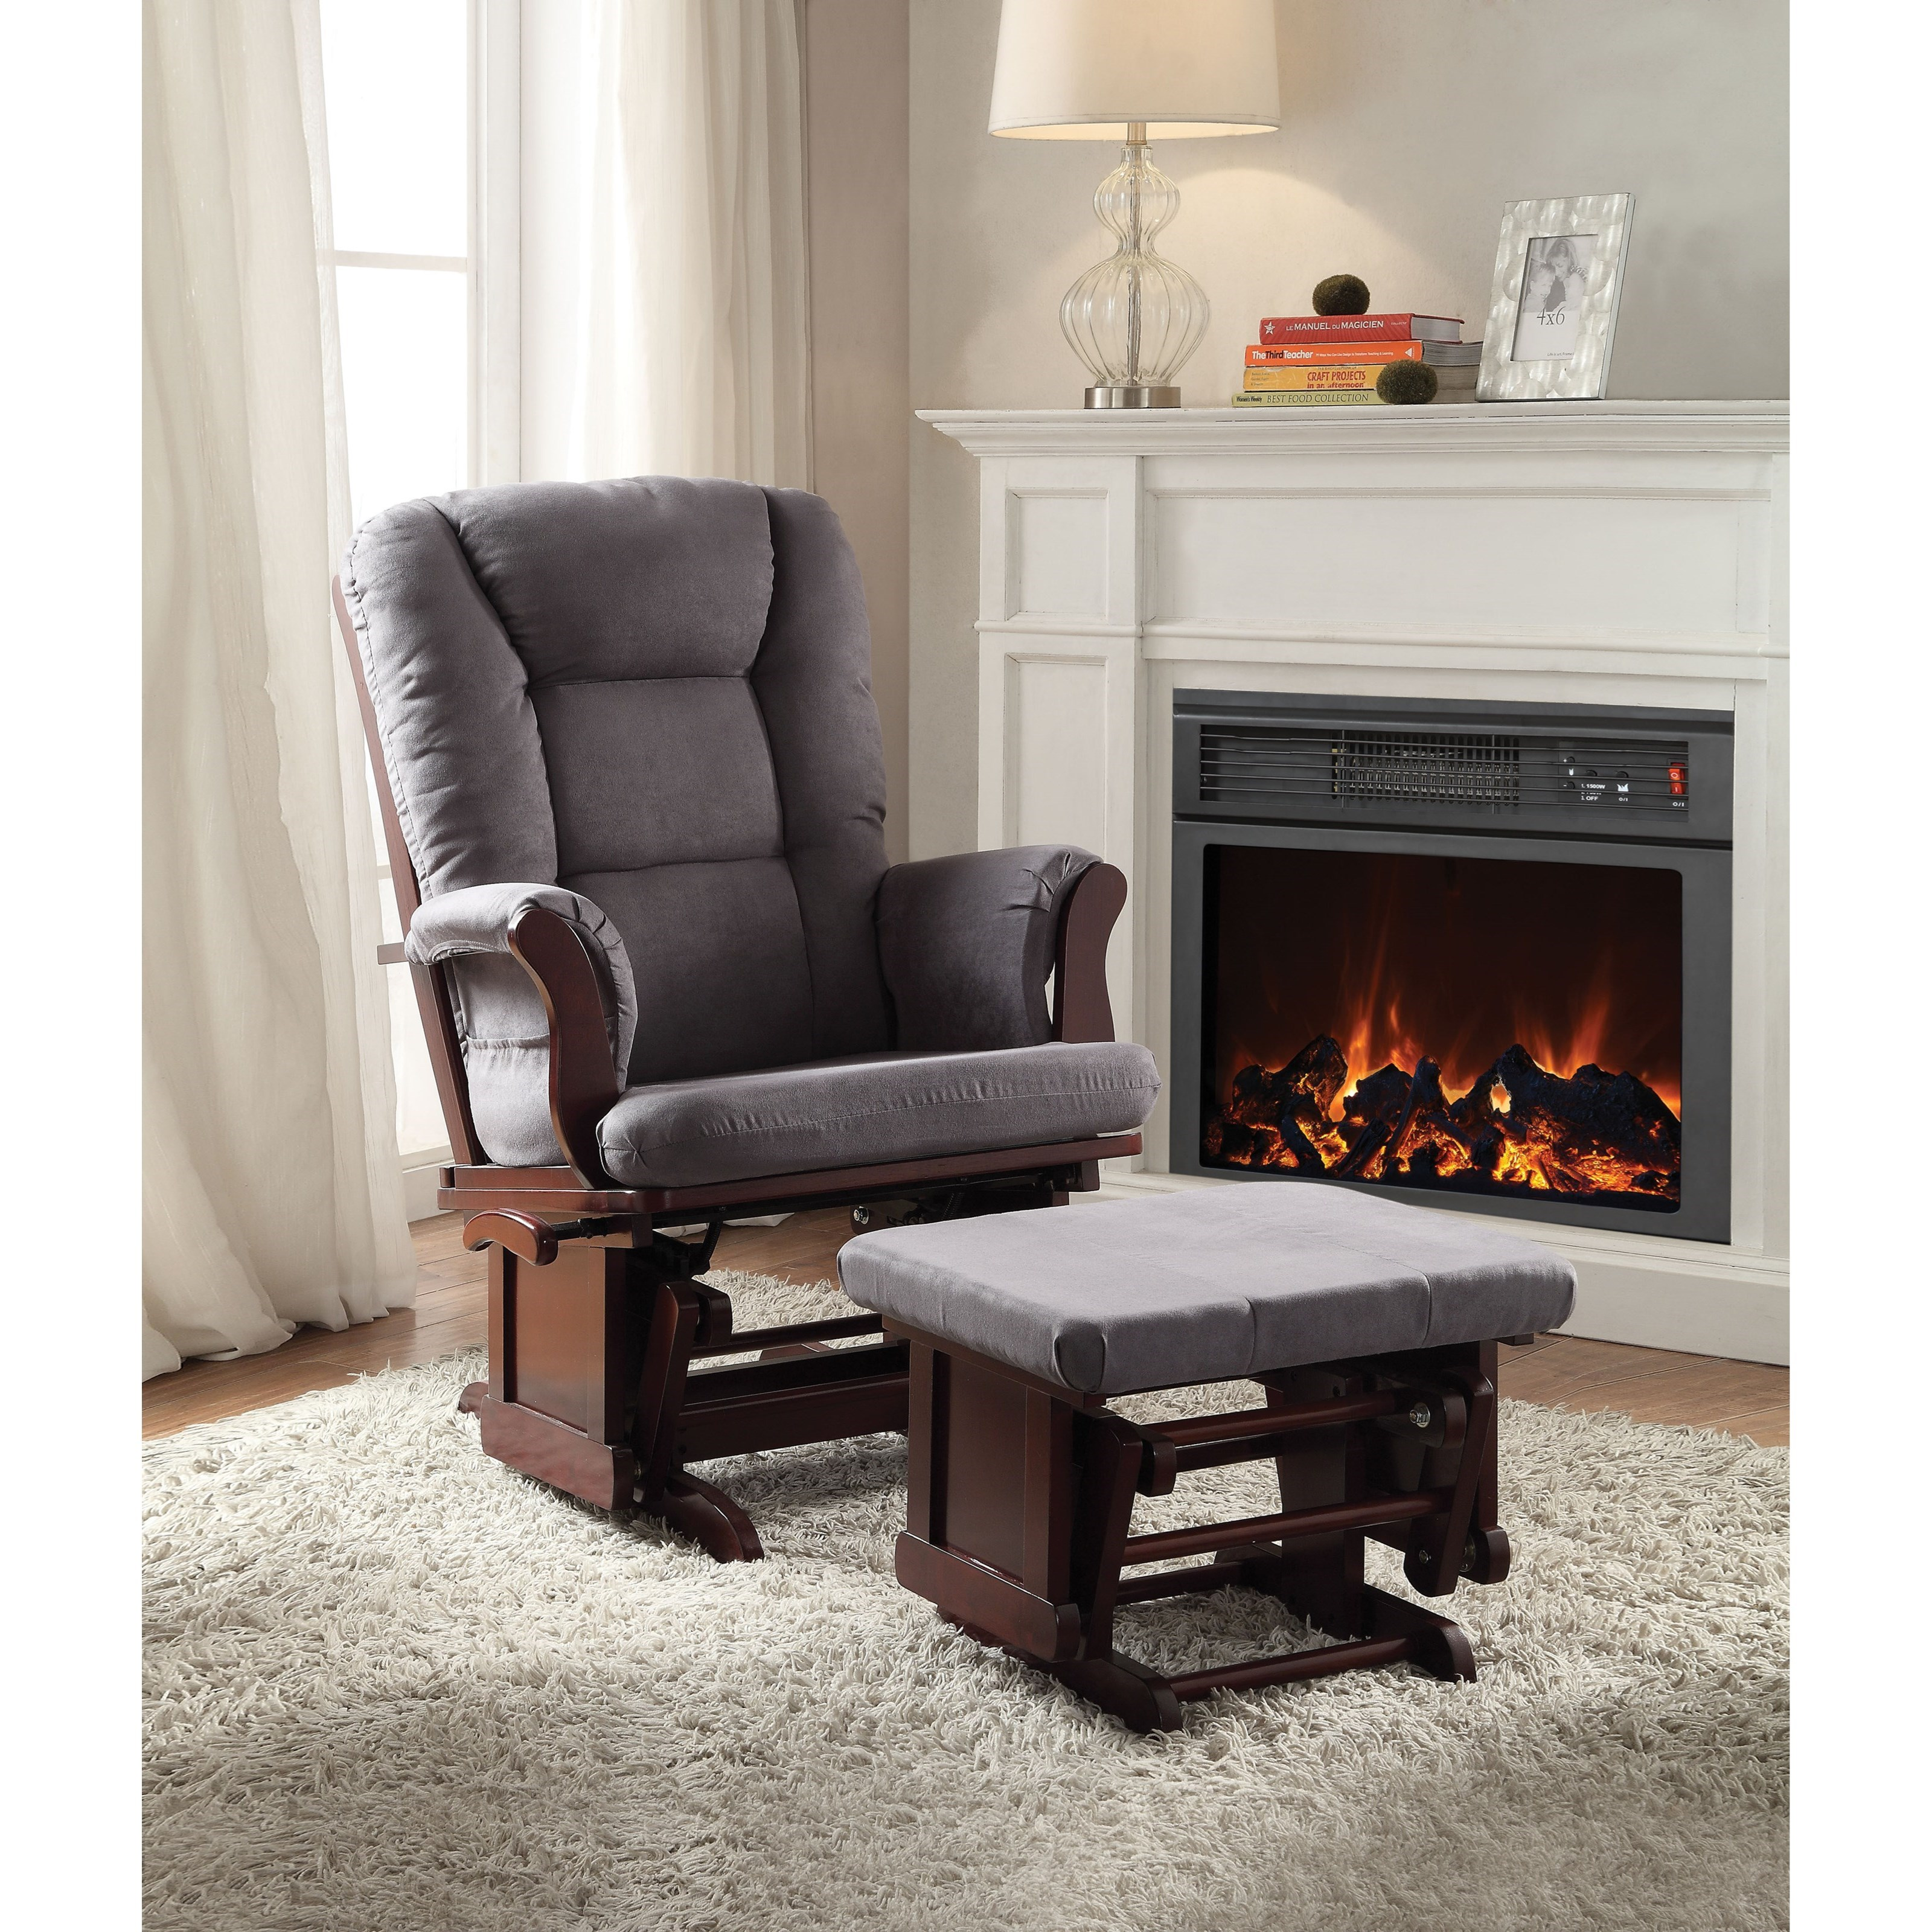 2PCPK Glider Chair and Ottoman